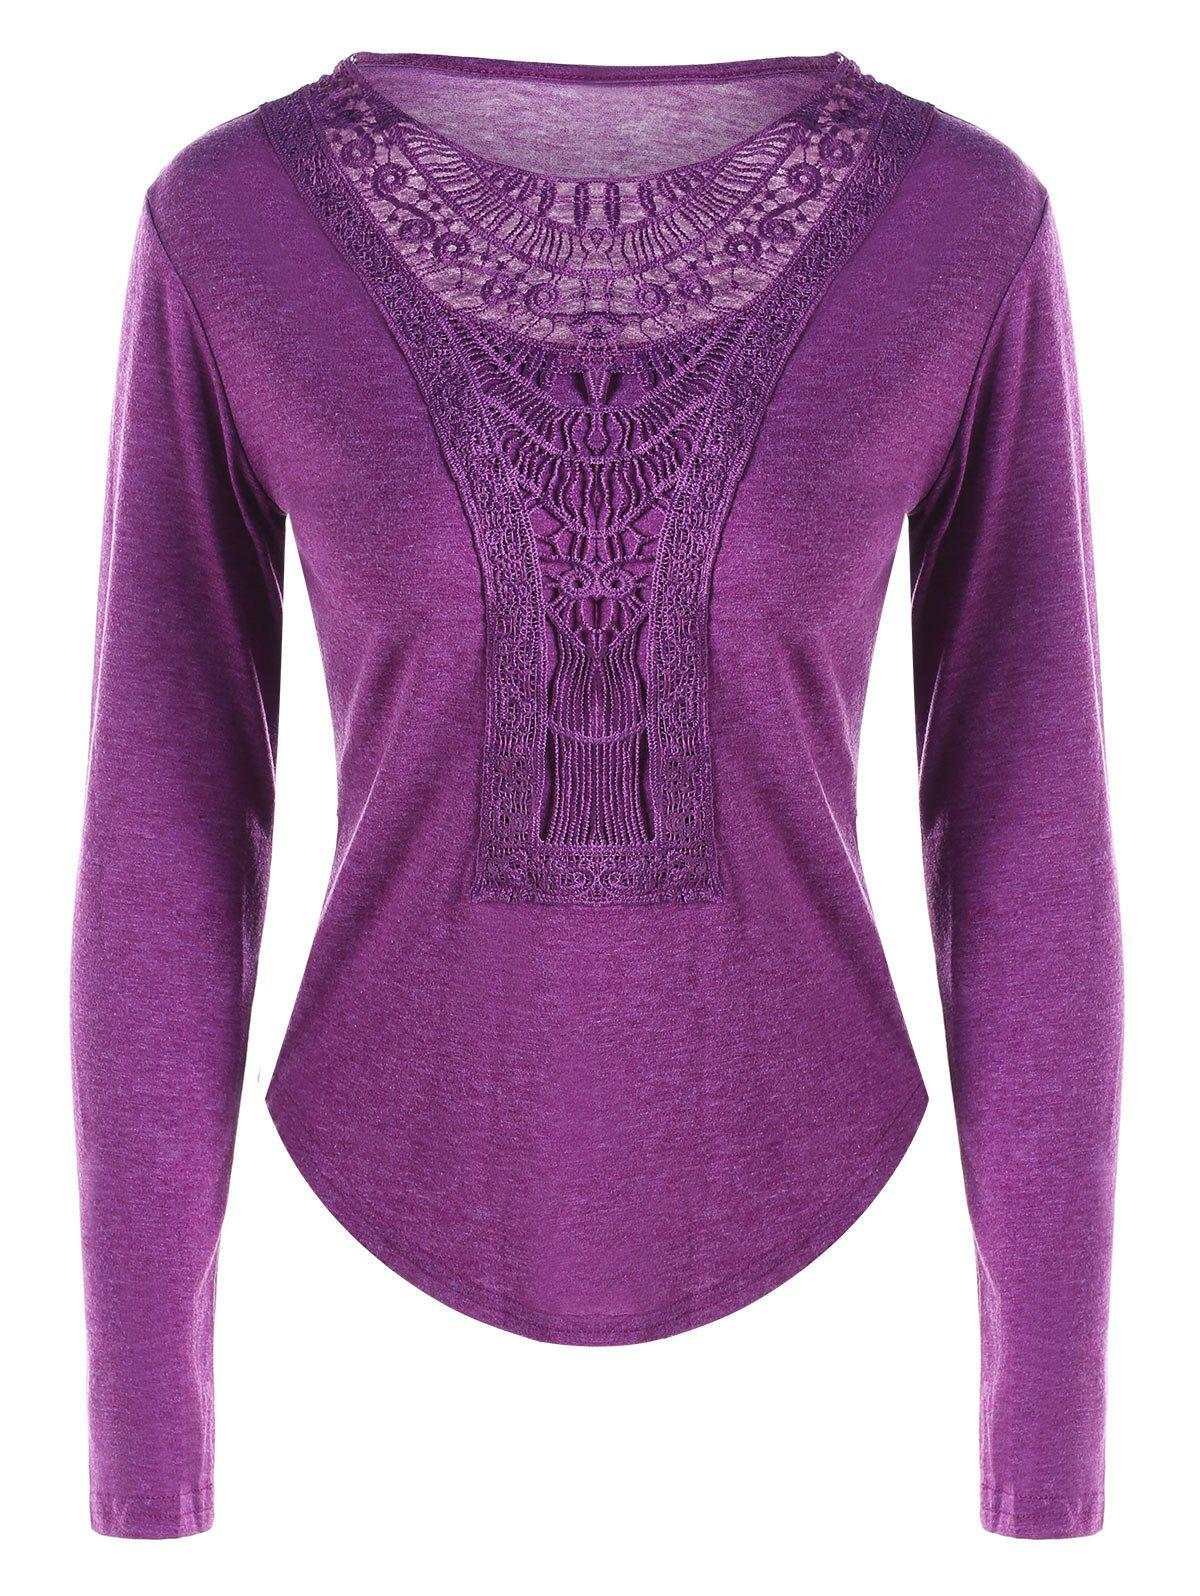 Lace Trim Curved Hem TopWOMEN<br><br>Size: L; Color: PURPLE; Material: Polyester,Spandex; Shirt Length: Regular; Sleeve Length: Full; Collar: Round Neck; Style: Casual; Embellishment: Lace; Pattern Type: Solid Color; Season: Fall,Spring; Weight: 0.2800kg; Package Contents: 1 x Top;